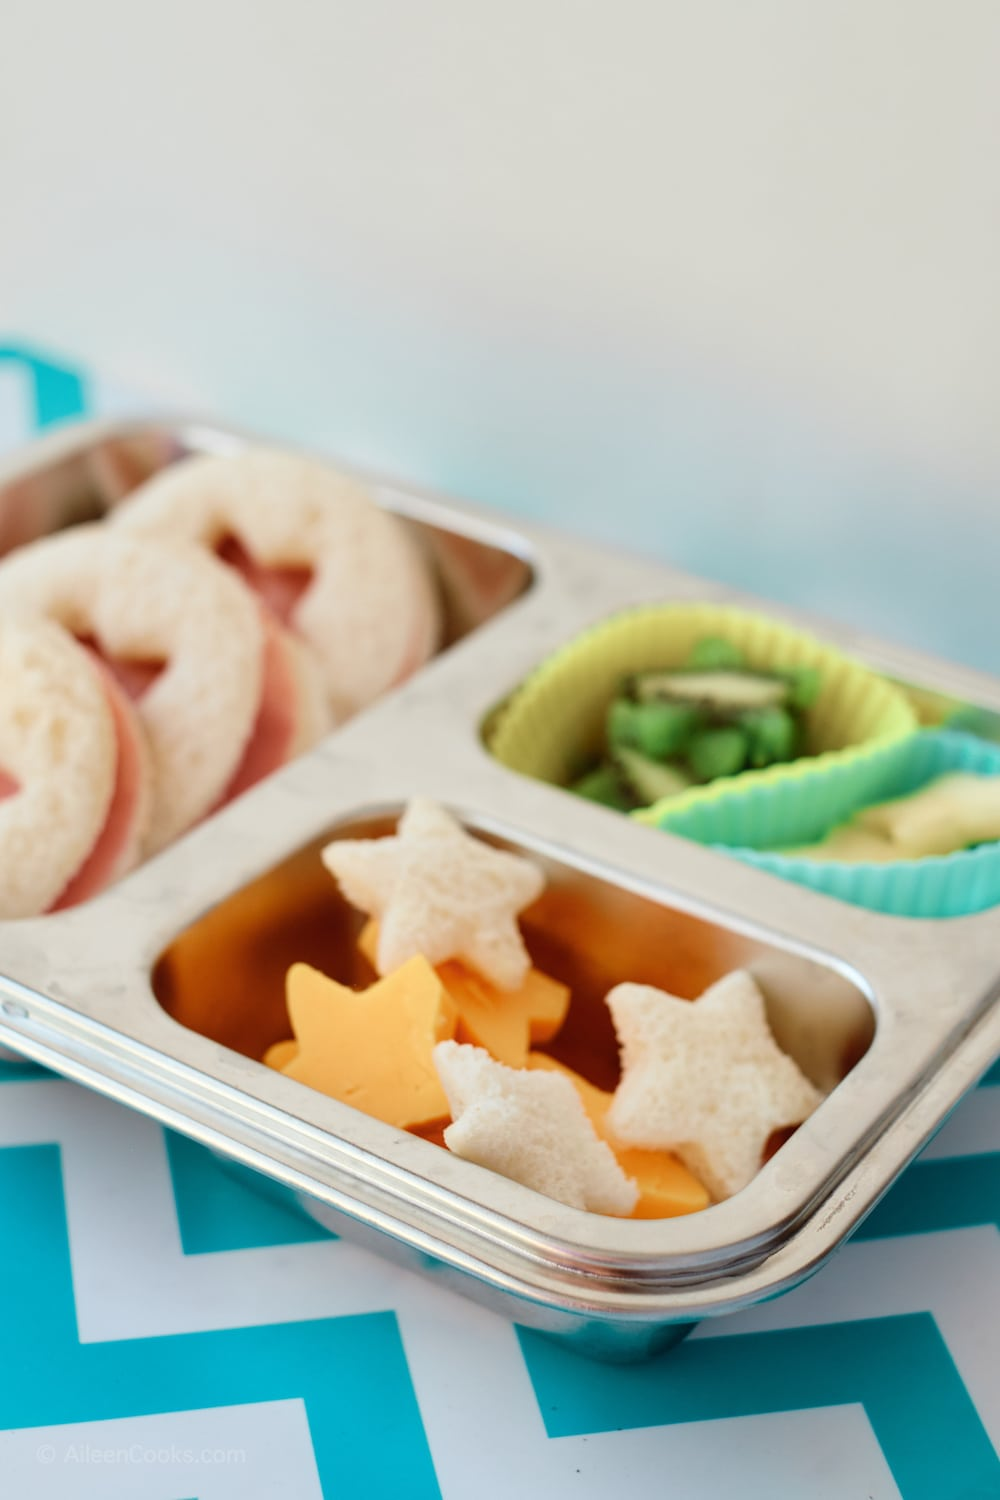 A bento box filled with star shaped cheese, bread, fruit, and ham sandwiches.